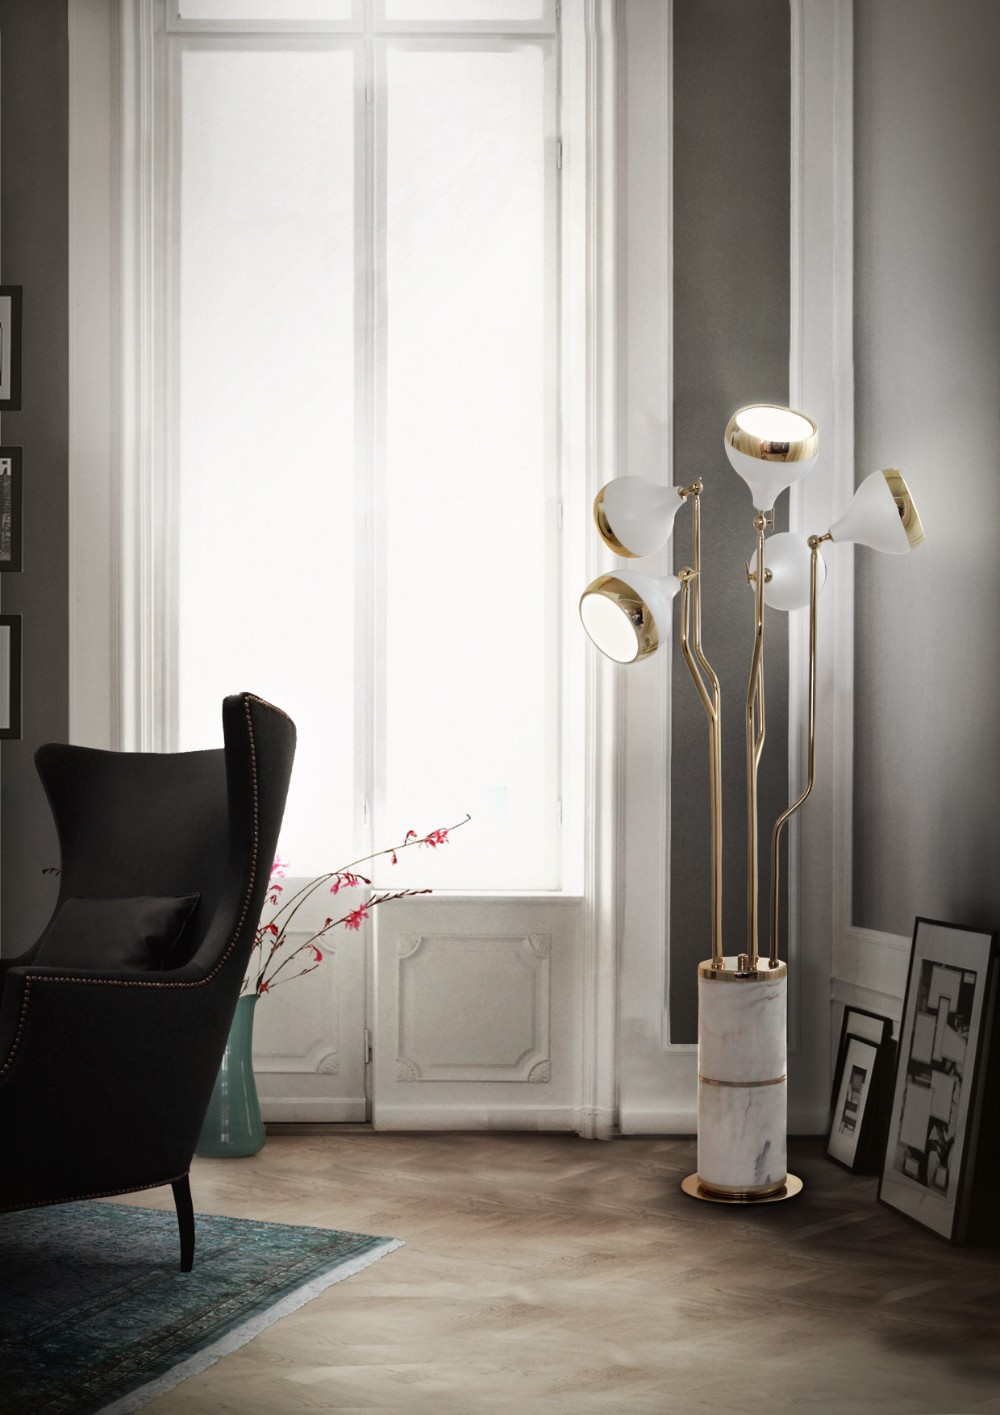 Winter Trends 5 Reasons Why Everyone Love White Floor Lamps 5 white floor lamps white floor lamps Winter Trends: 5 Reasons Why Everyone Love White Floor Lamps Winter Trends 5 Reasons Why Everyone Love White Floor Lamps 5